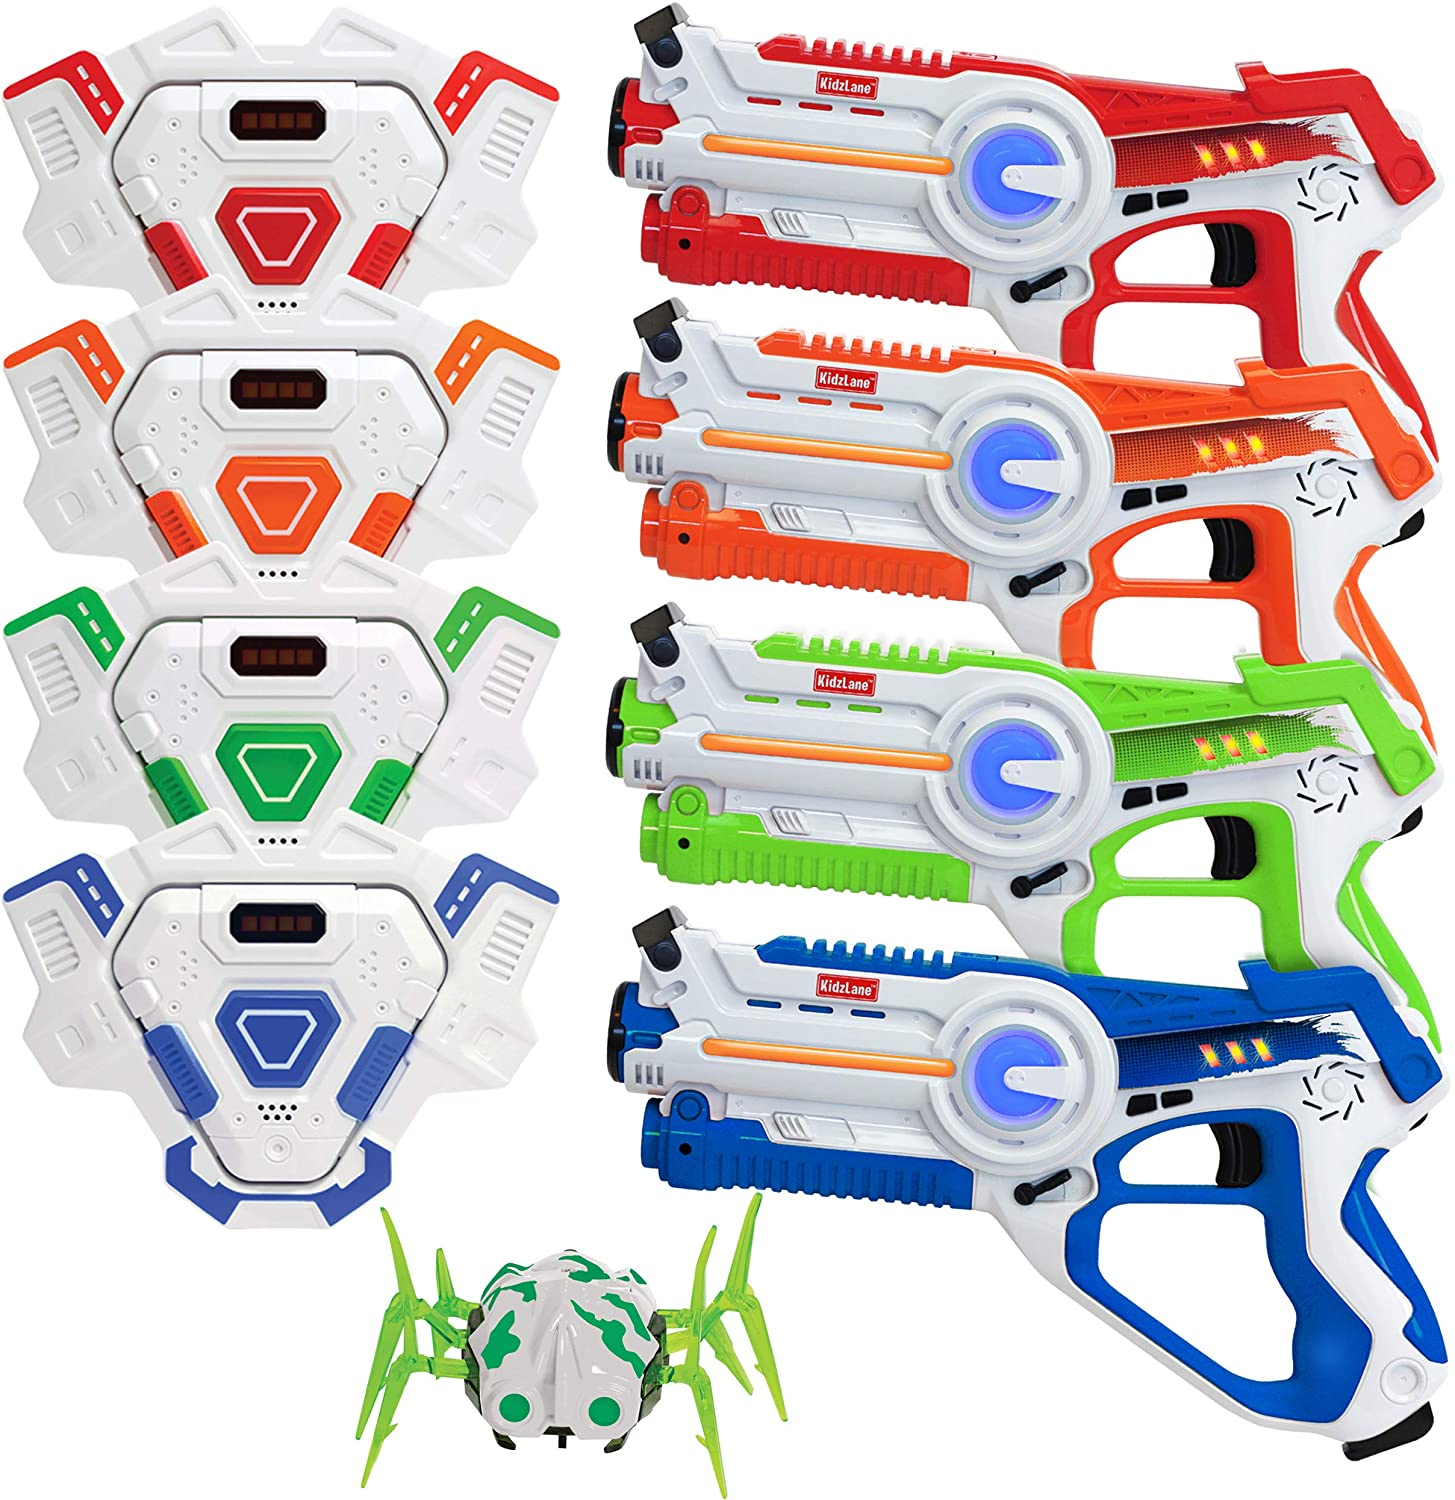 Lazer Tag Set of 4 with Vest and Laser Tag Spider Target